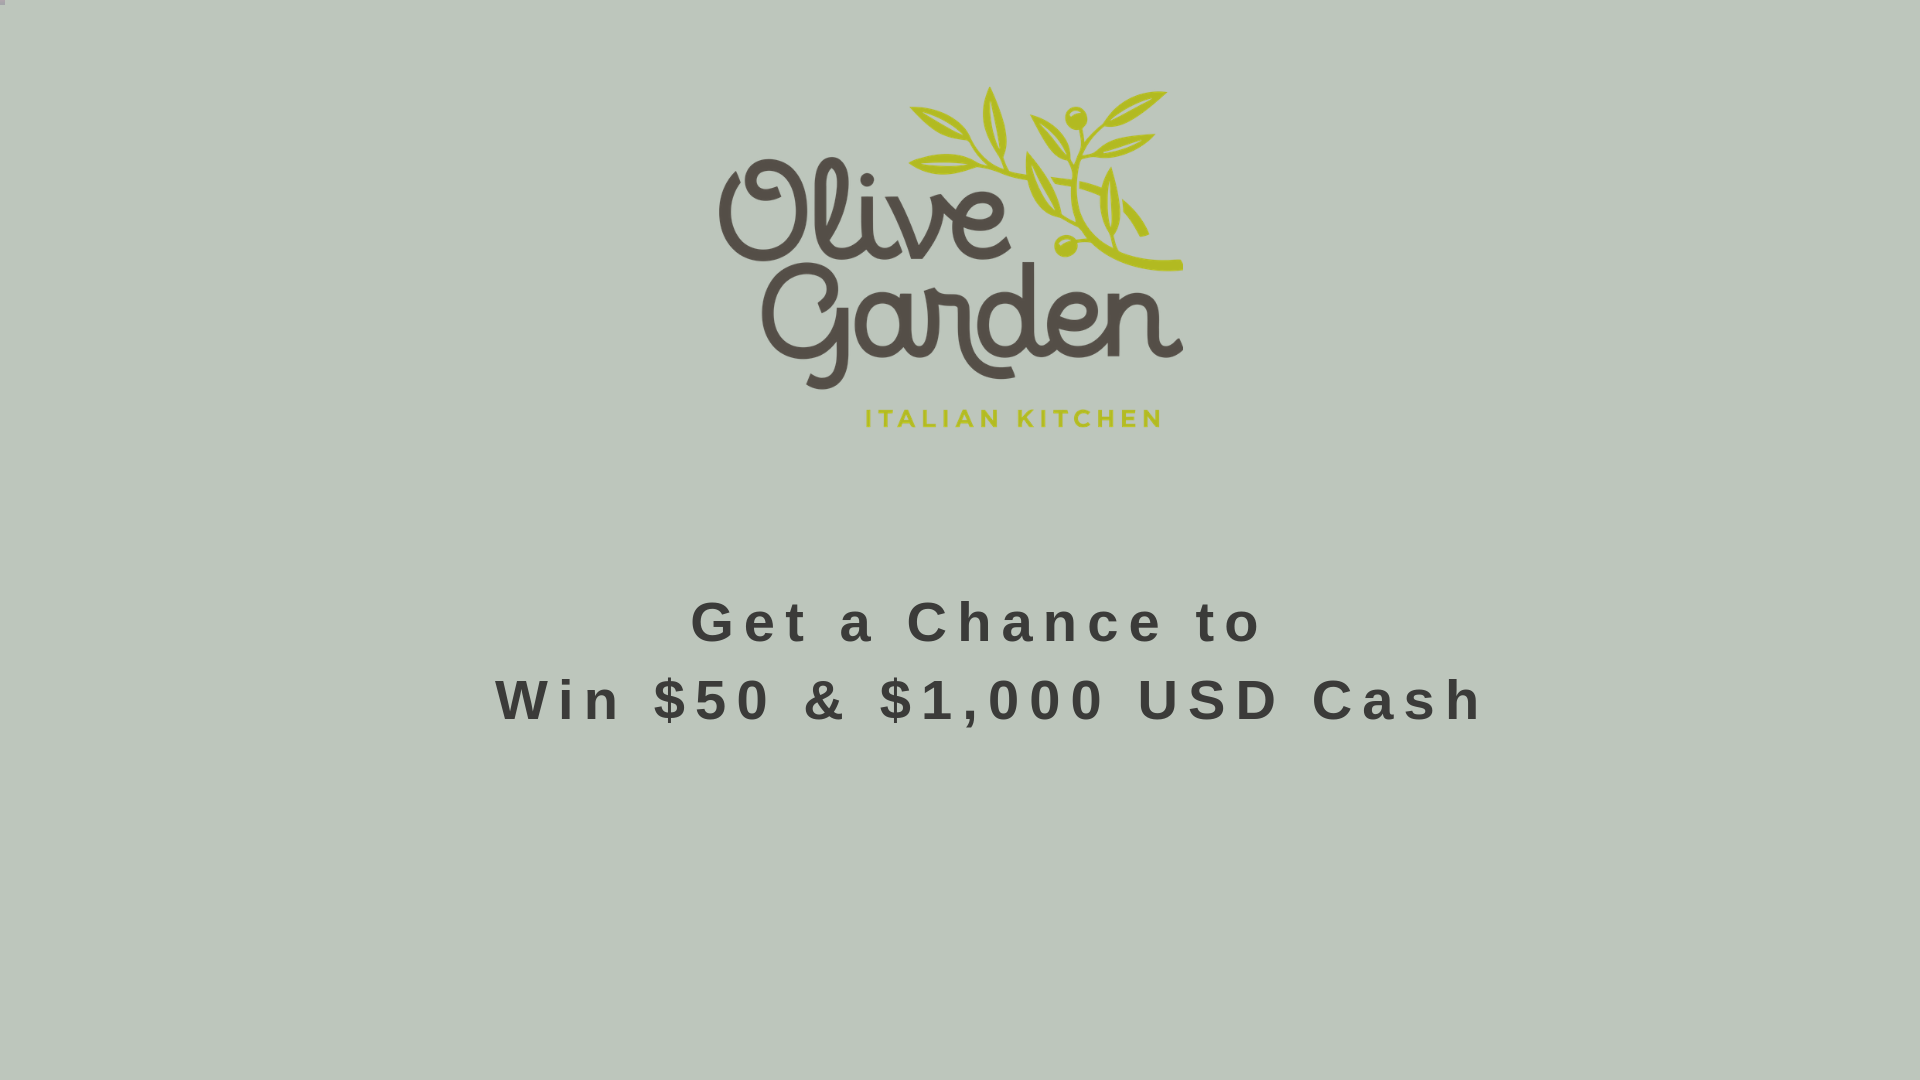 Olive Garden Survey | Get a Chance to Win $1,000 &  $50 USD Cash💵